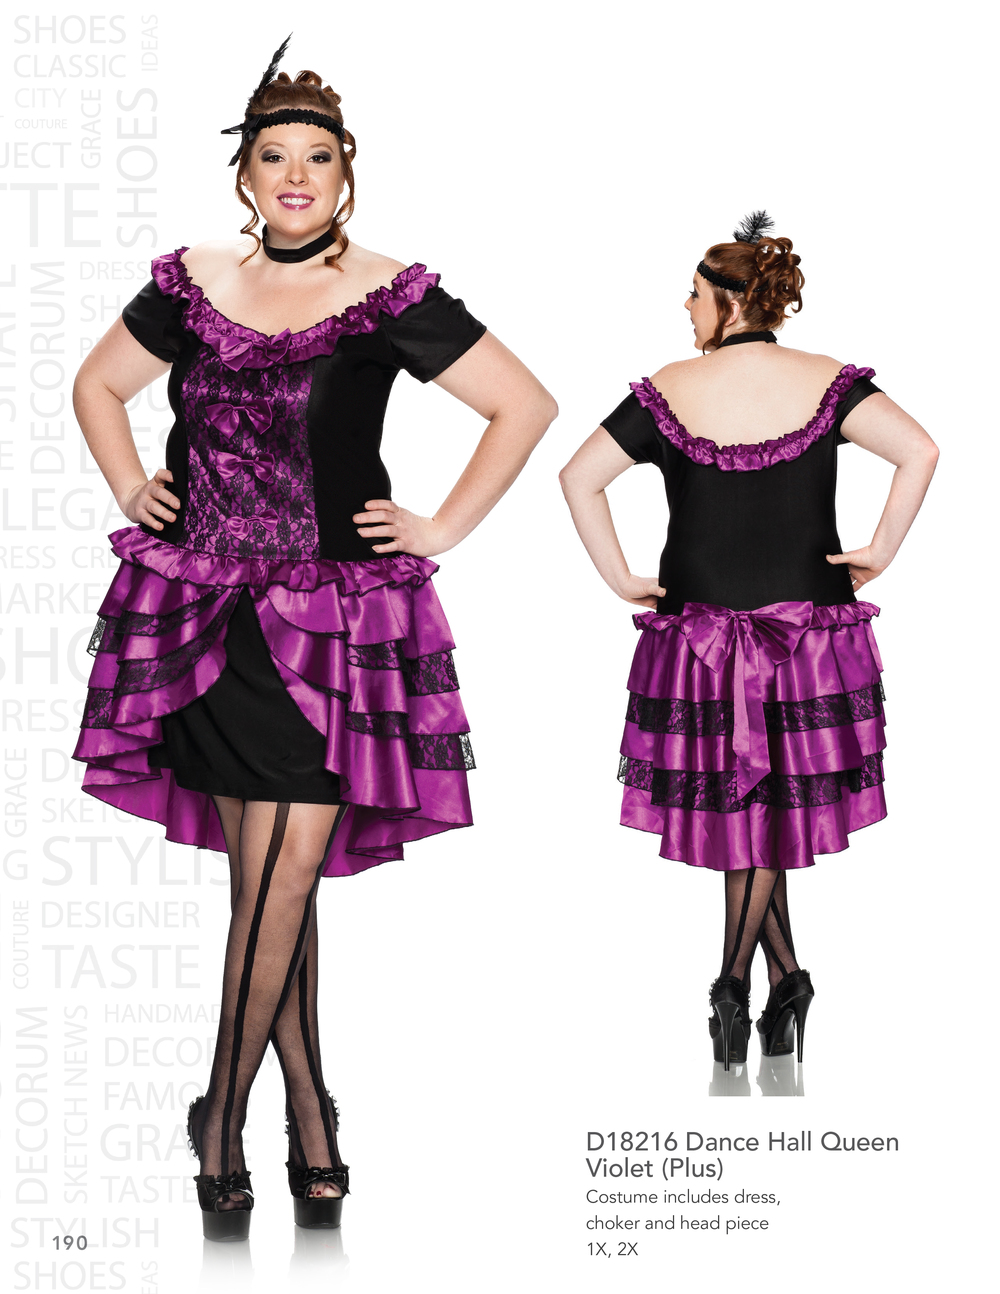 D18216 Dance Hall Queen - Violet